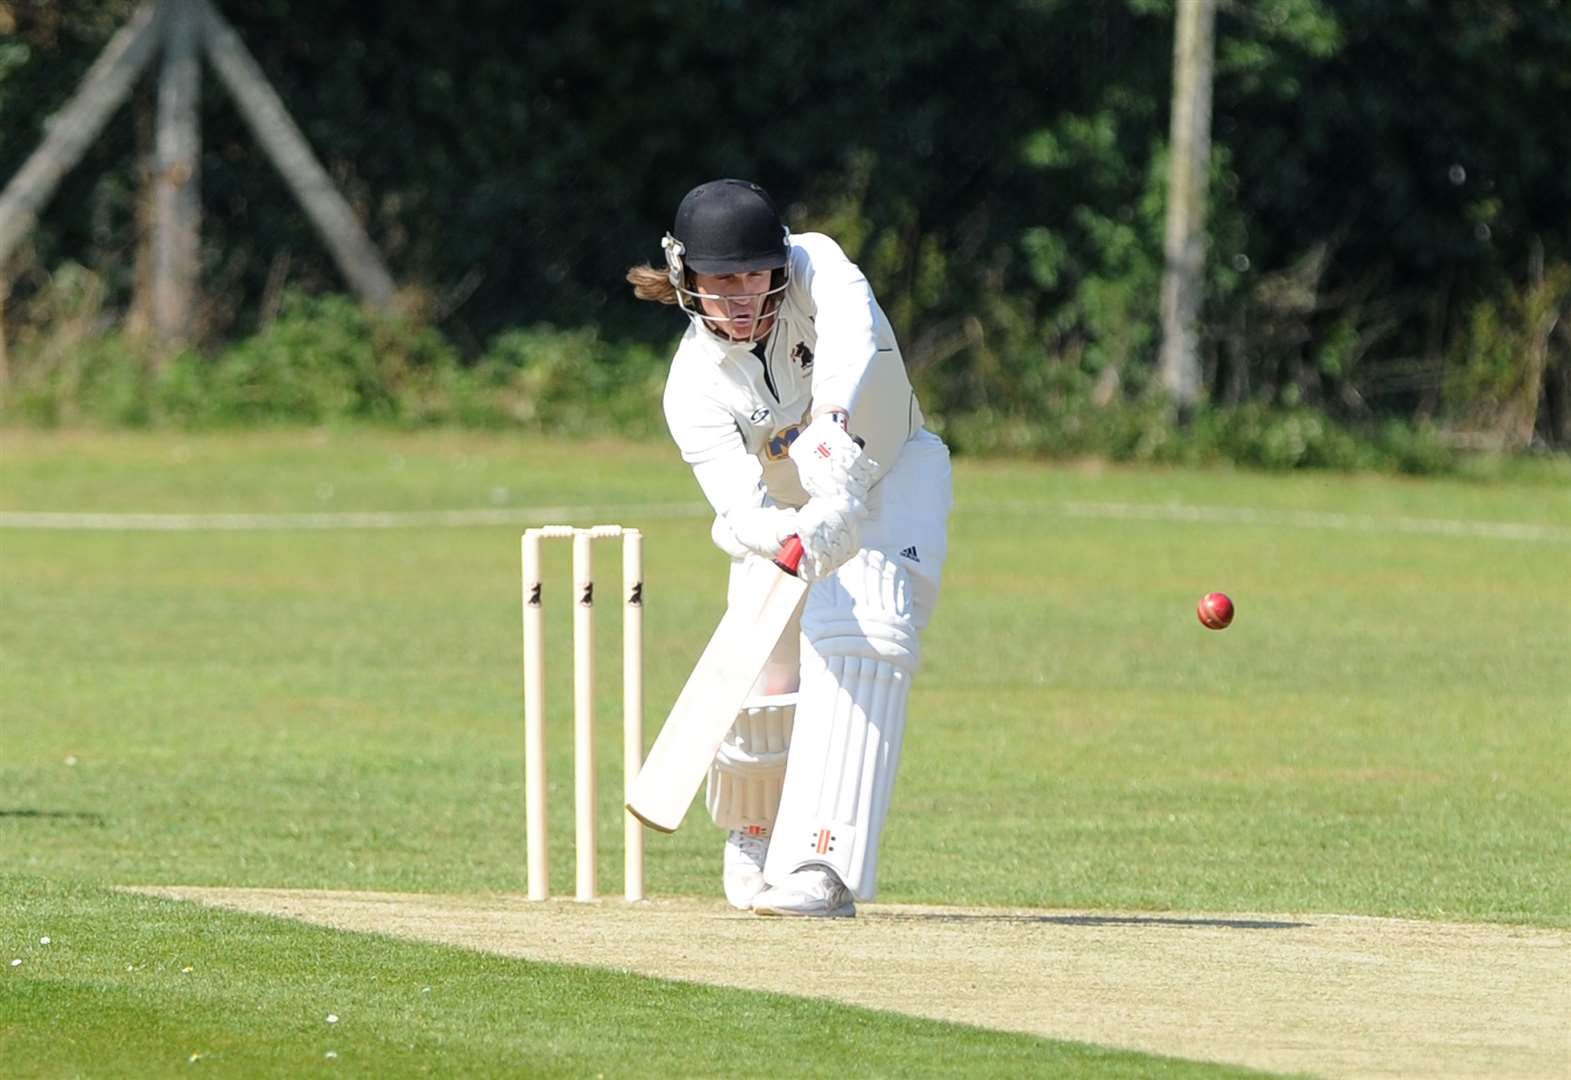 Haverhill heavily beaten as batsmen struggle for form